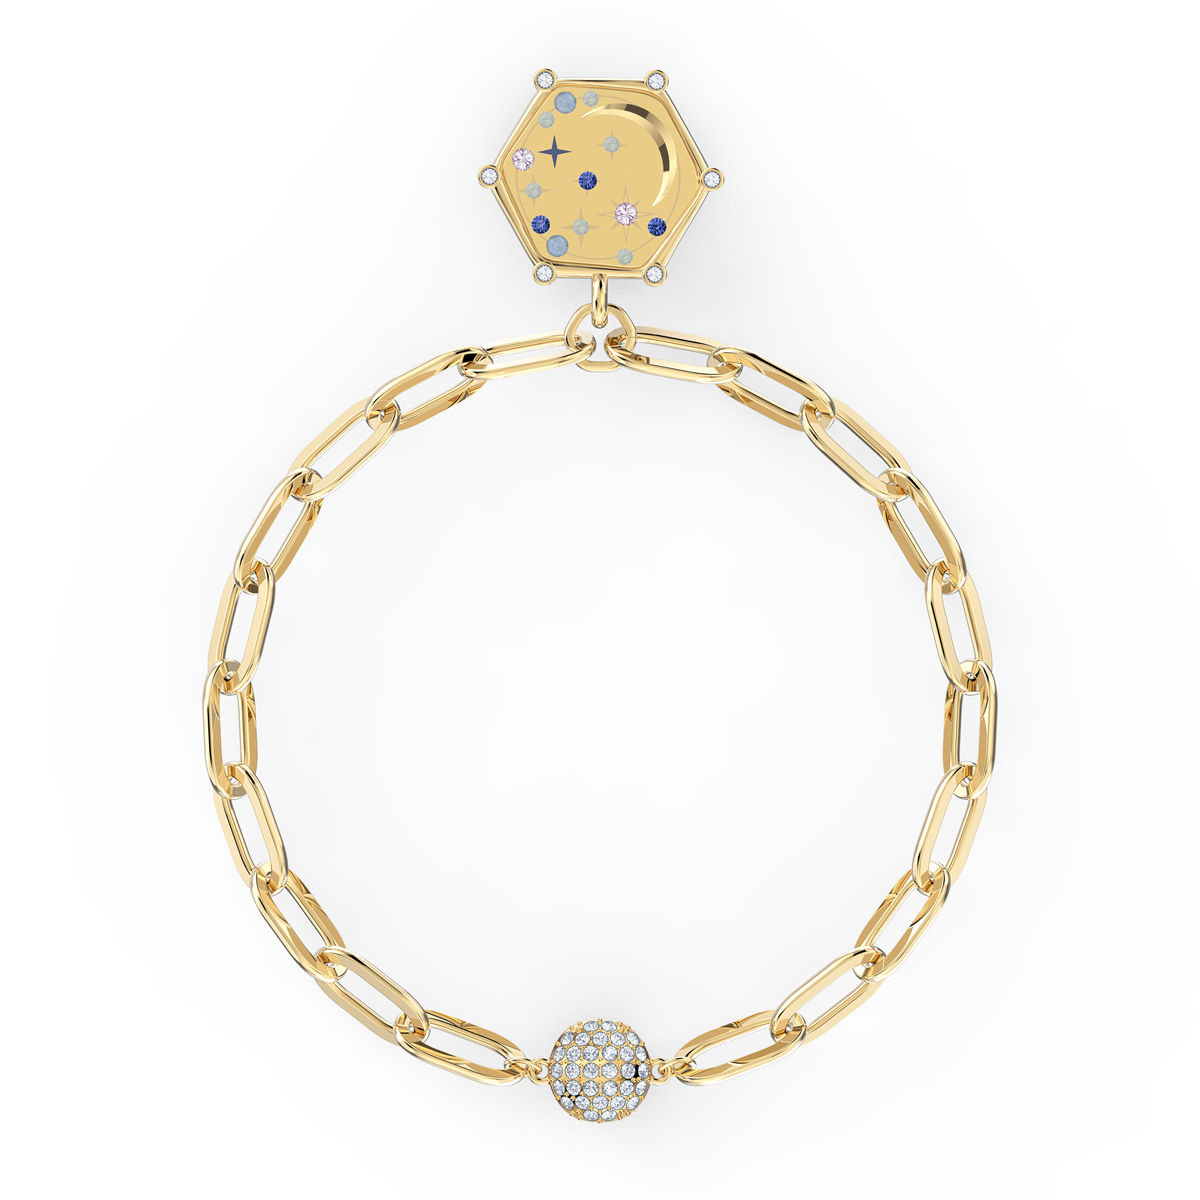 Swarovski The Elements Moon Bracelet, Blue, Gold Tone Plated